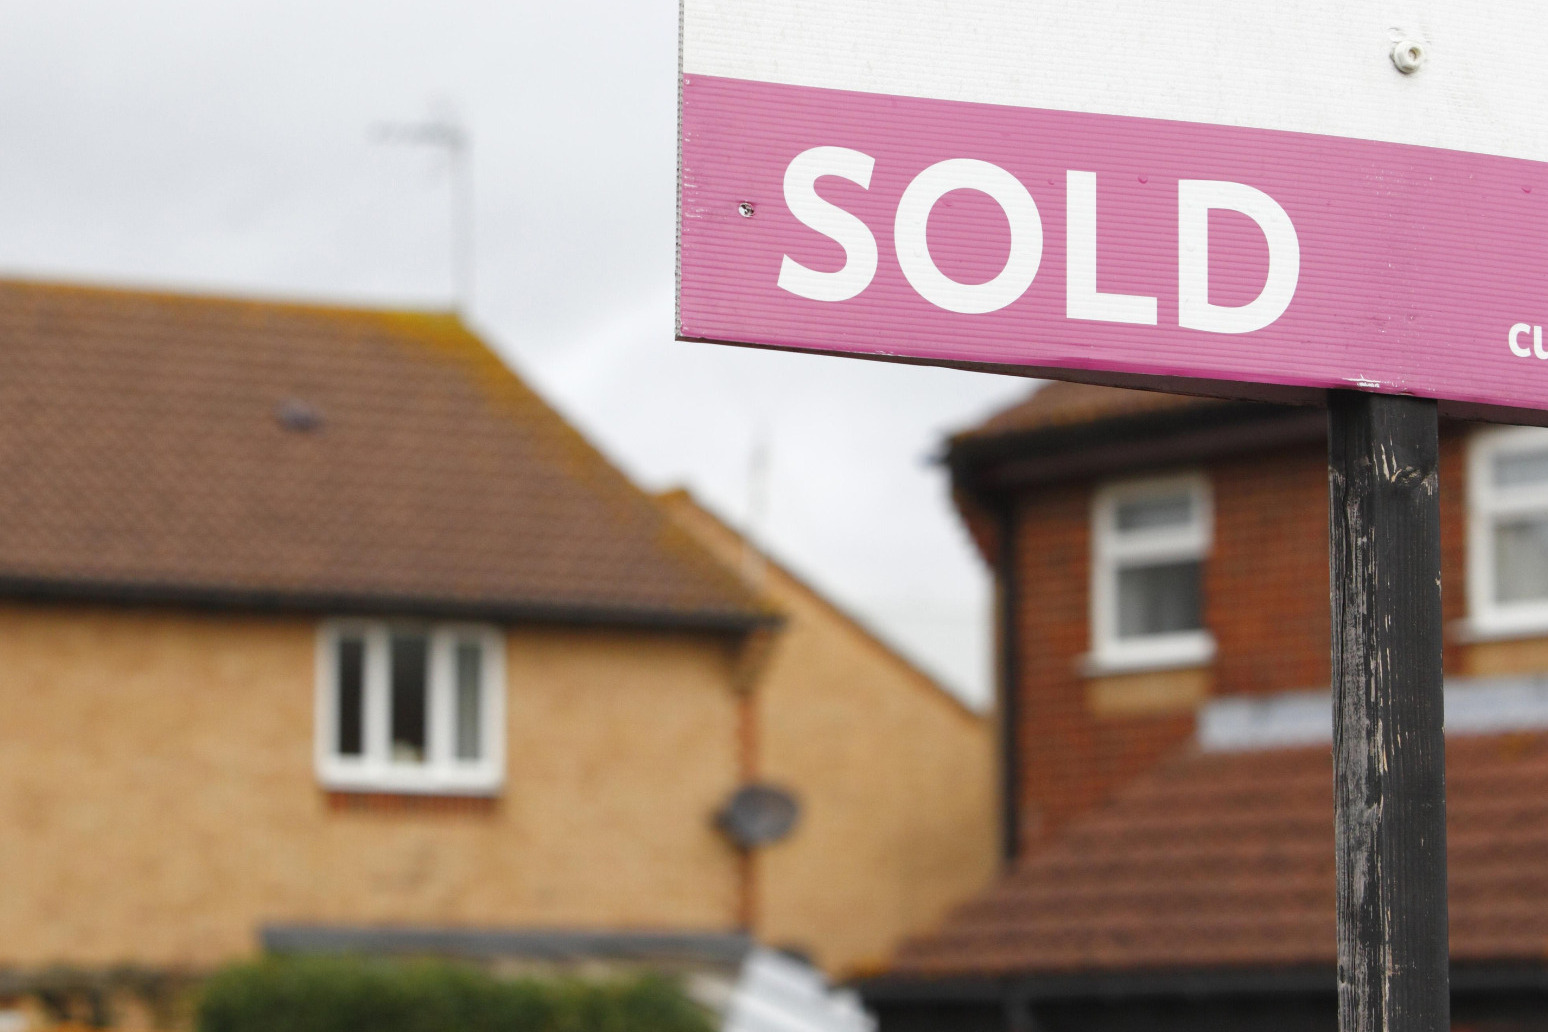 Bank of mum and dad 'supported 49% of first-time buyer purchases in 2021'